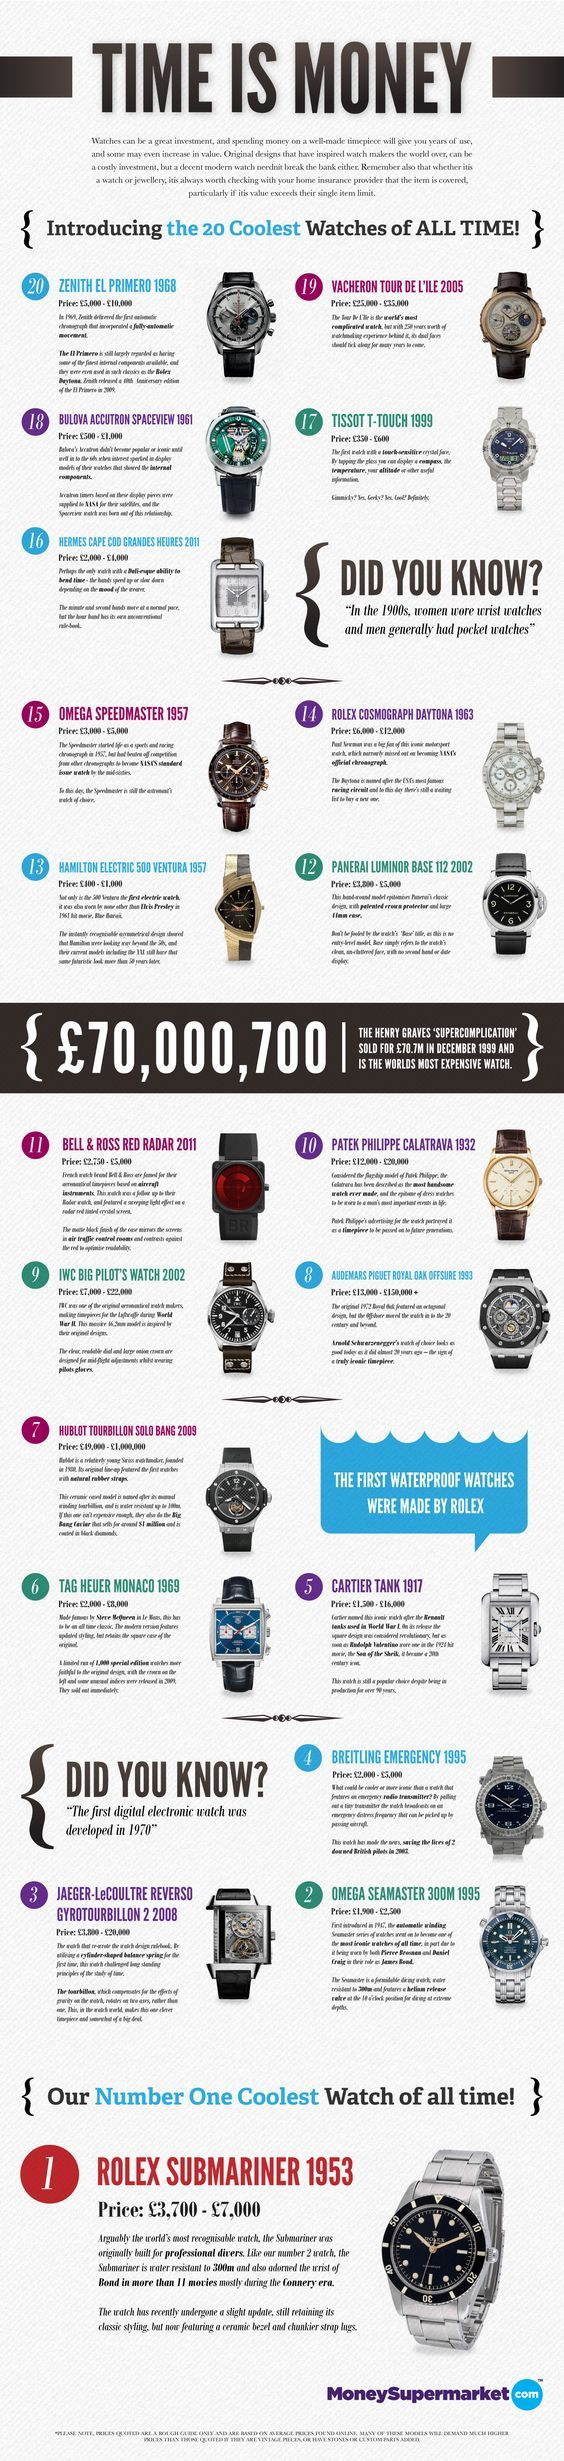 An Insurance Provider's List Of The Top 20 Watches Of All Time - Page 2 of 2 | A BLOG TO WATCH